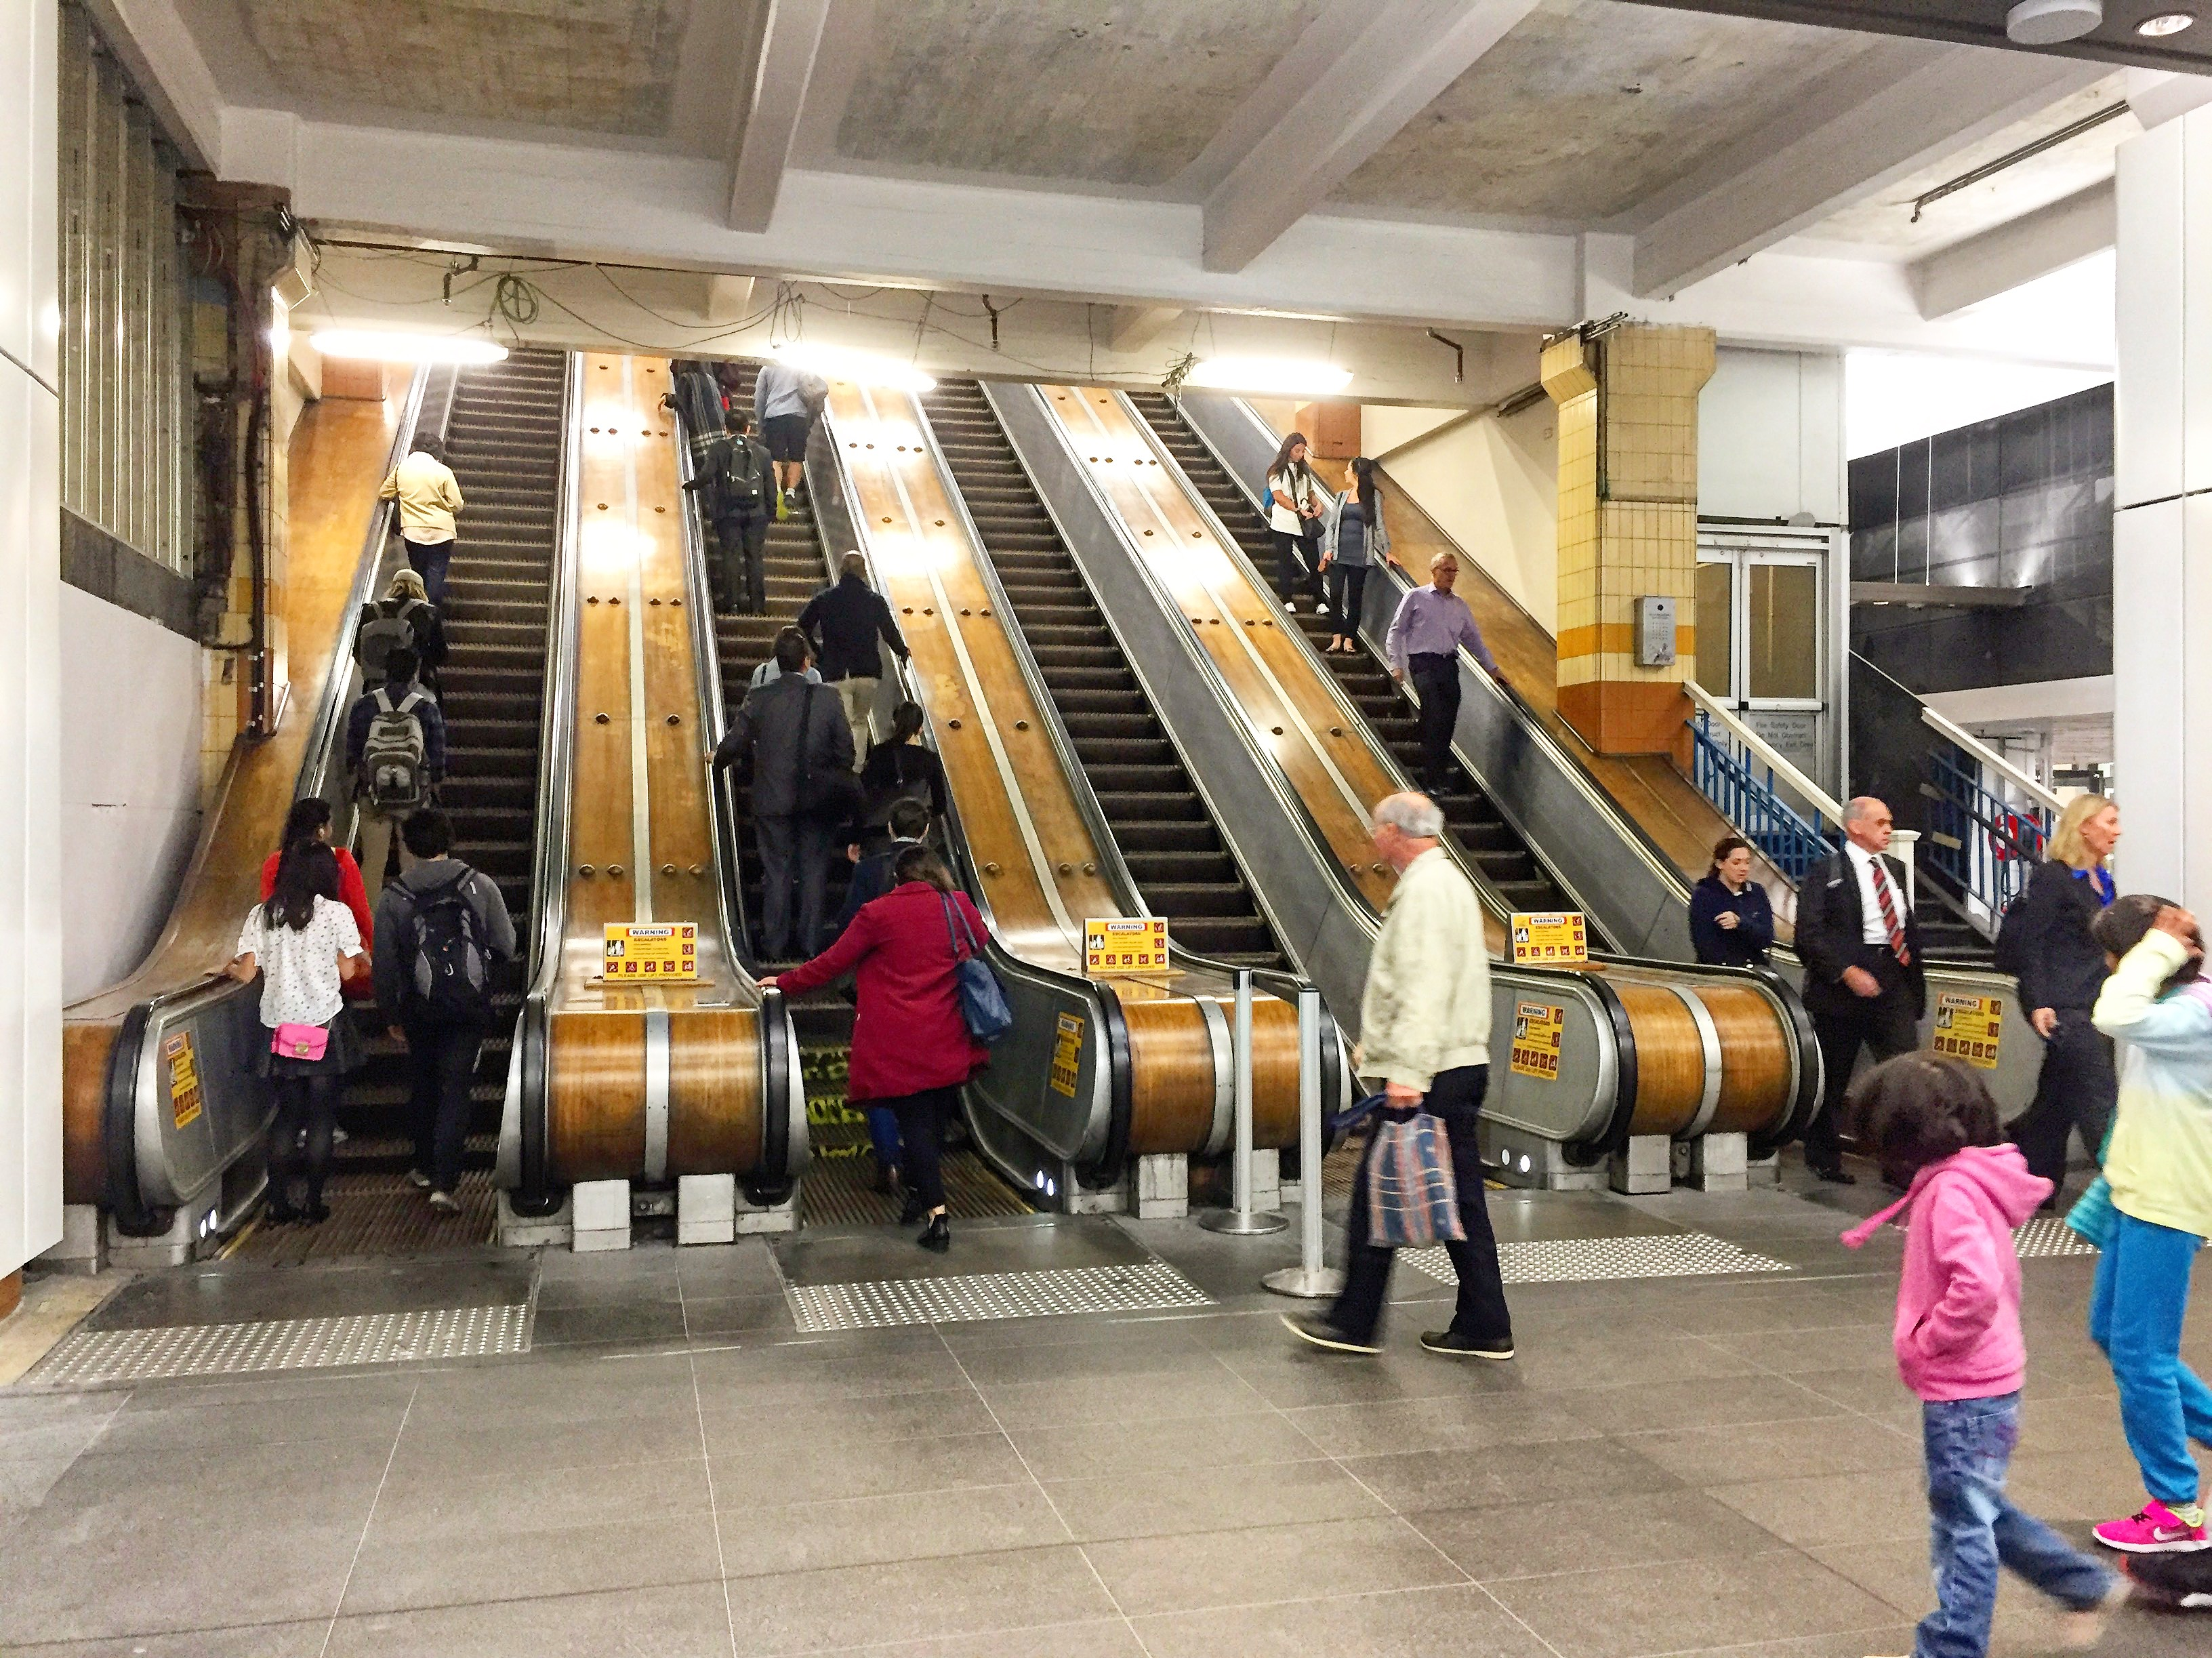 Wynyard's wooden escalators